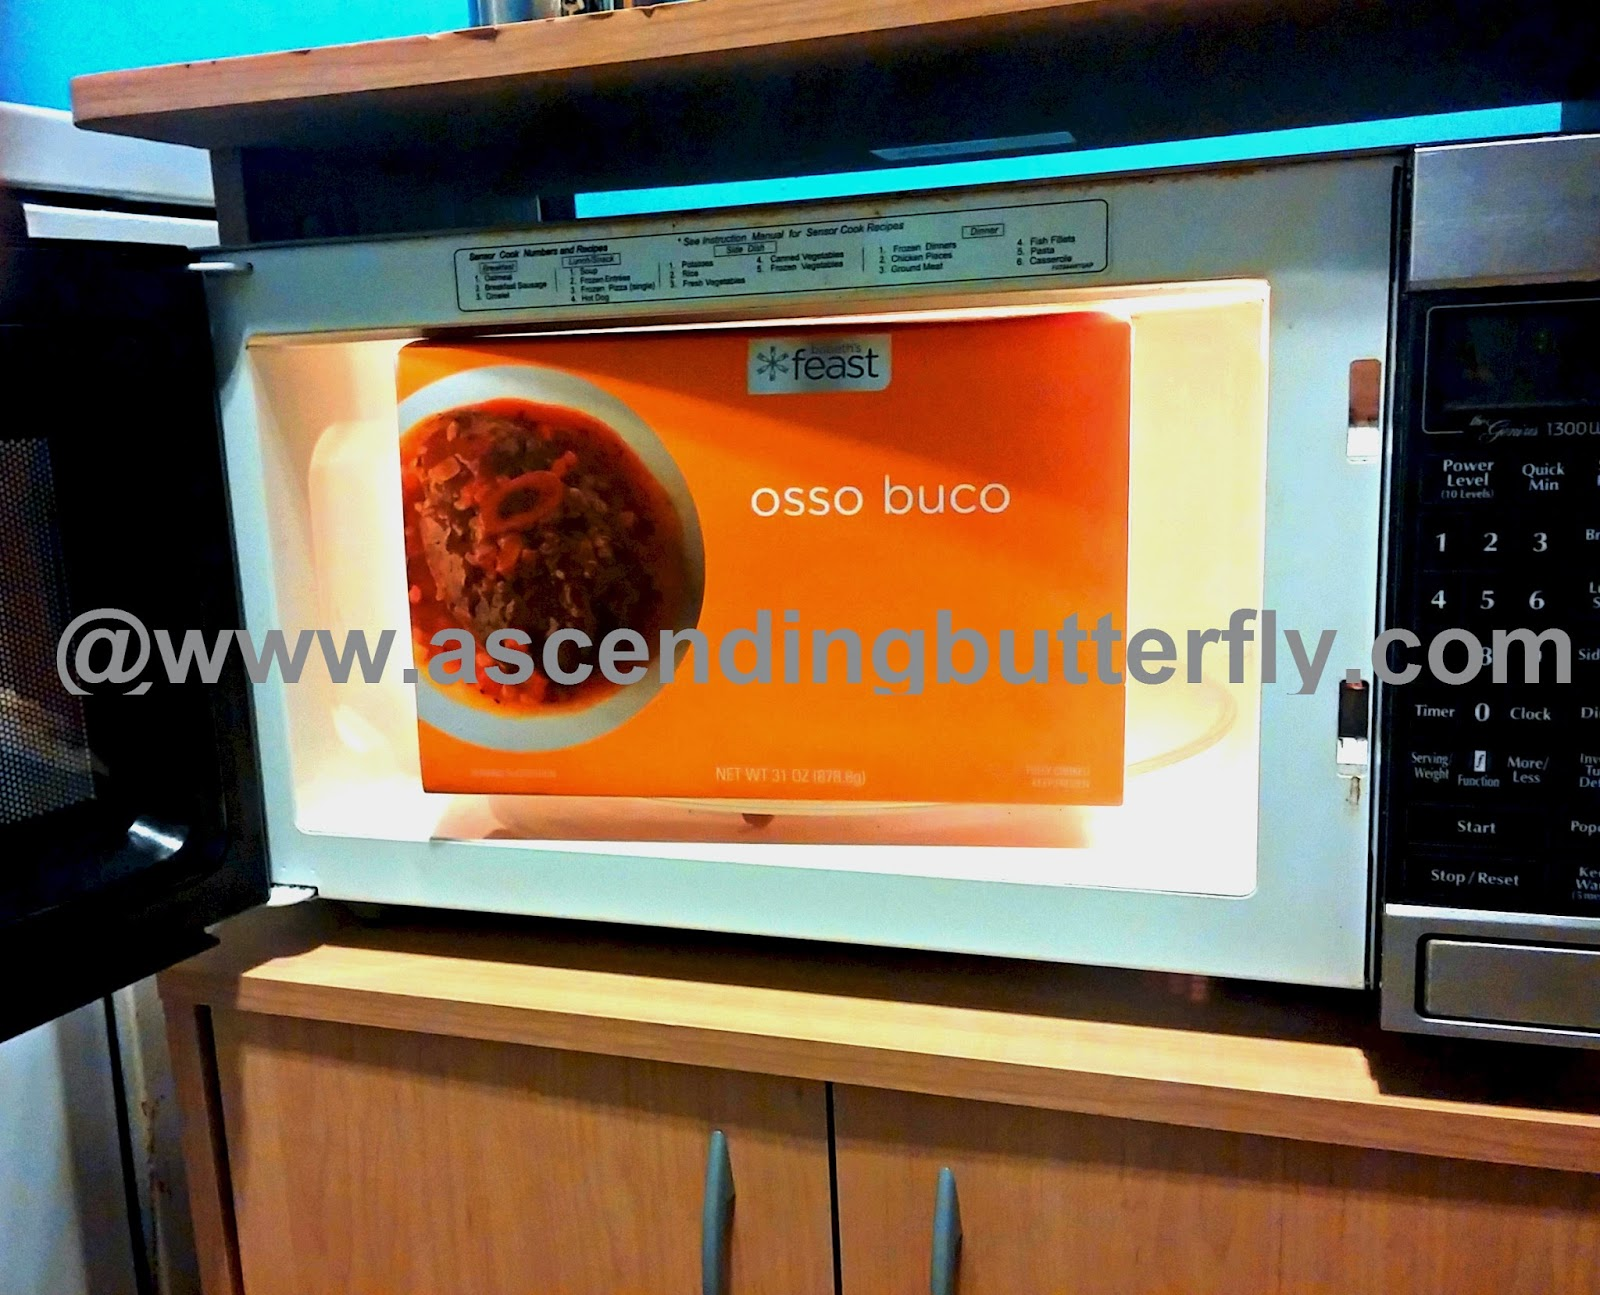 Babeth's Feast Osso Buco Premium Frozen Meal in Microwave